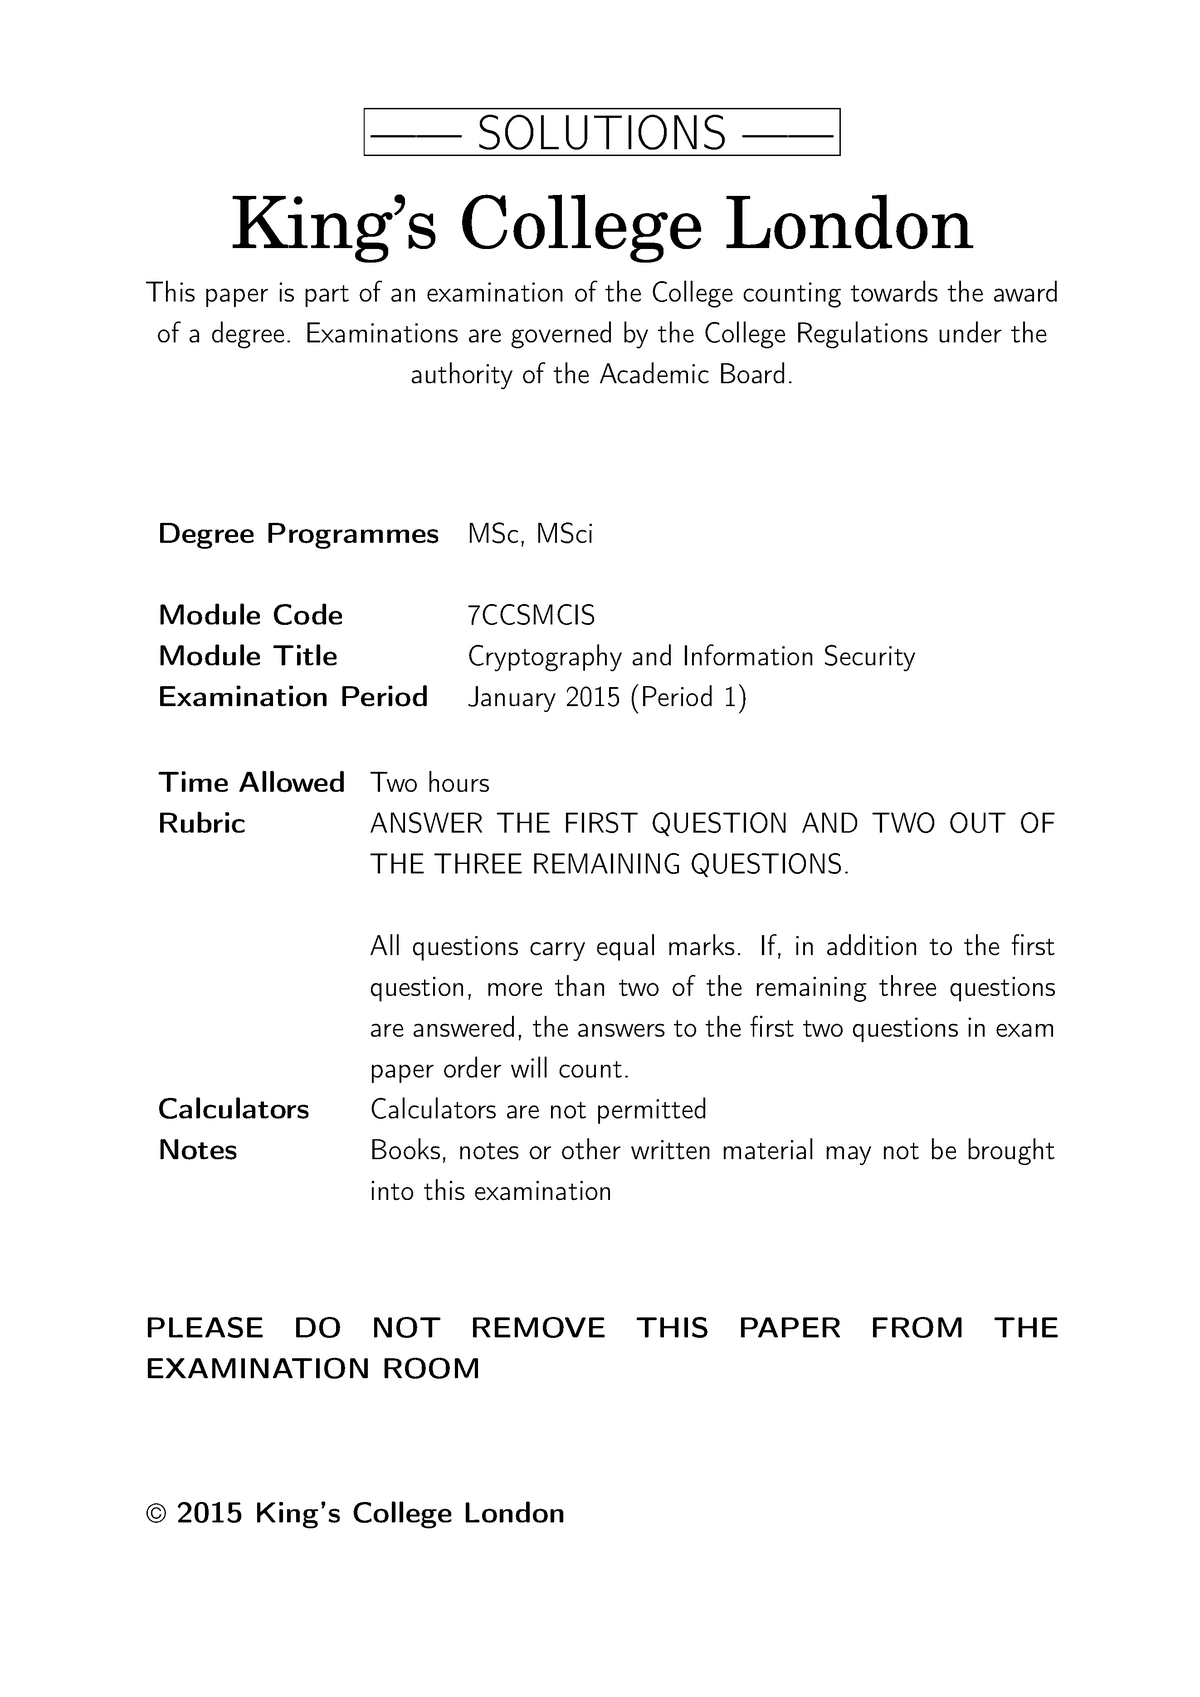 Exam 2015 - 6CCS3CIS: Cryptography and Information Security